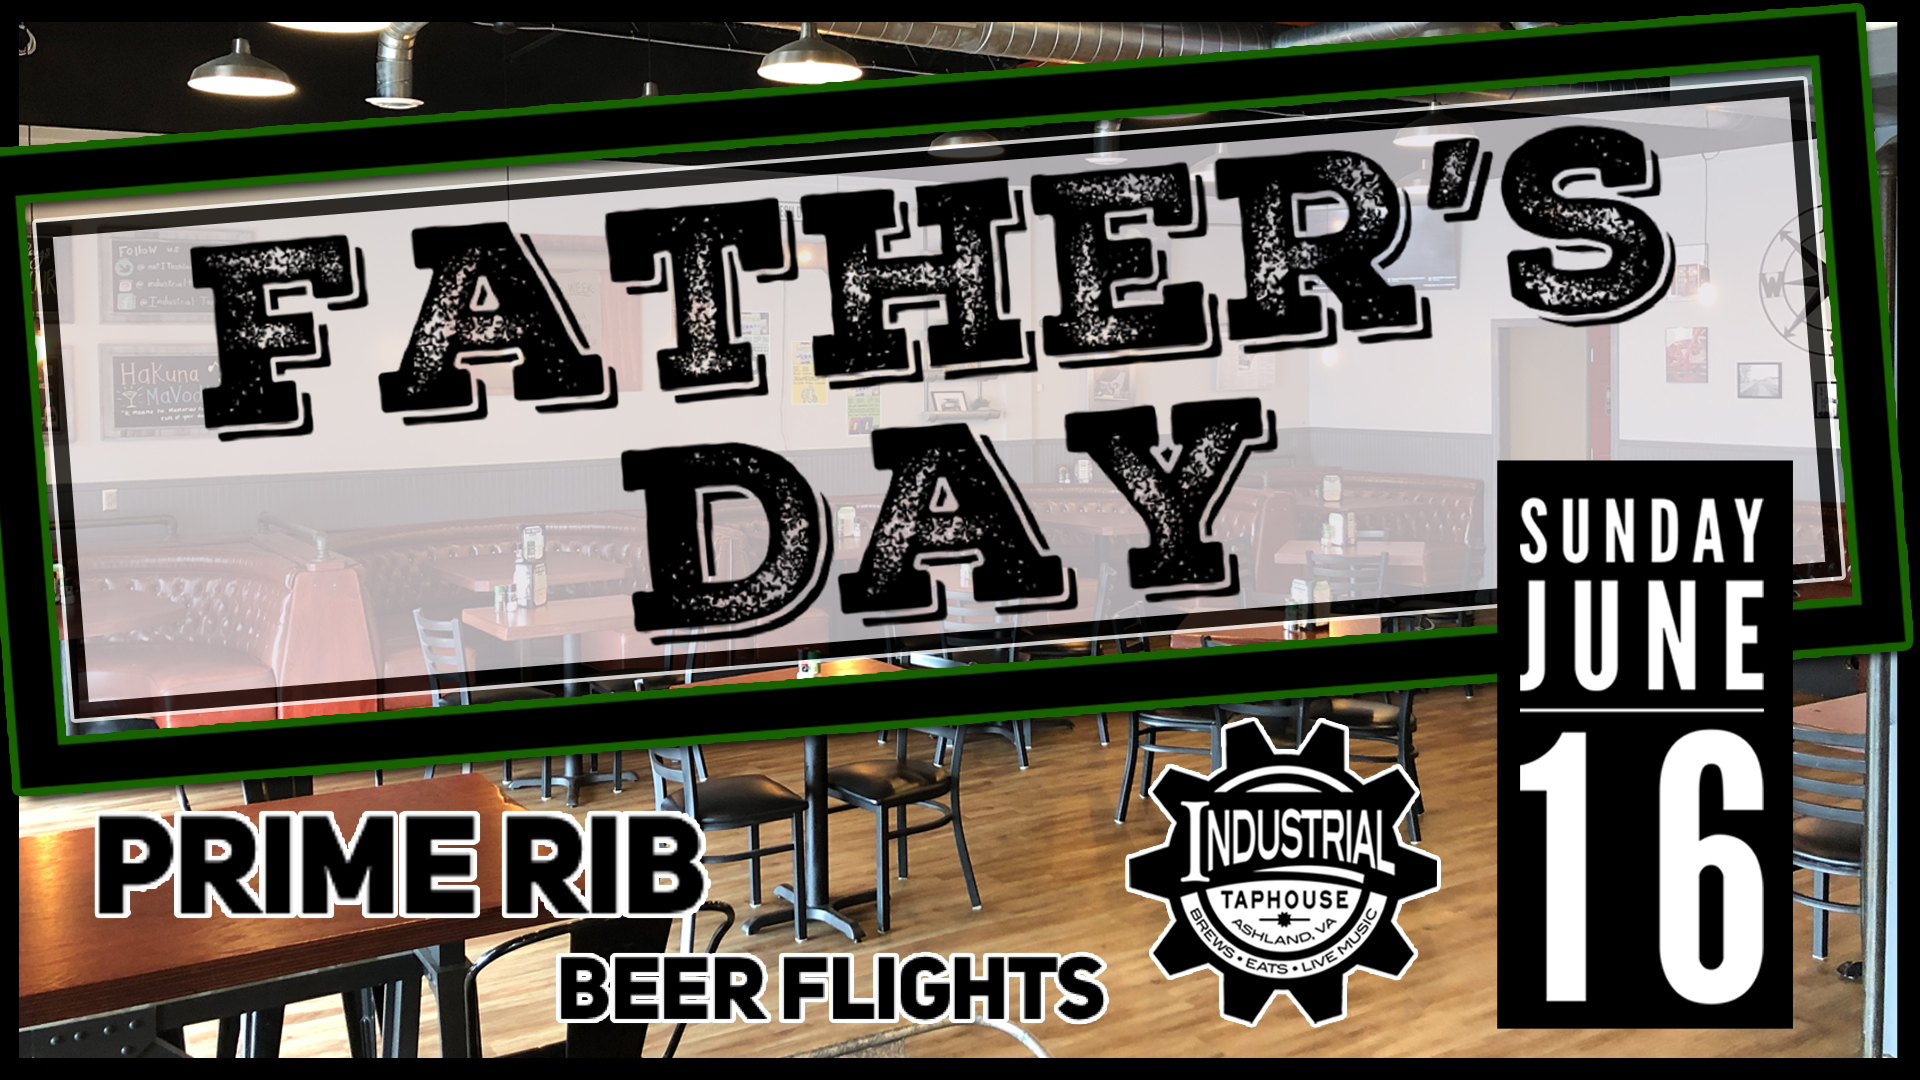 fathers day, industrial Taphouse, prime rib, beer flights, burgers, best restaurant, best bar, best burger